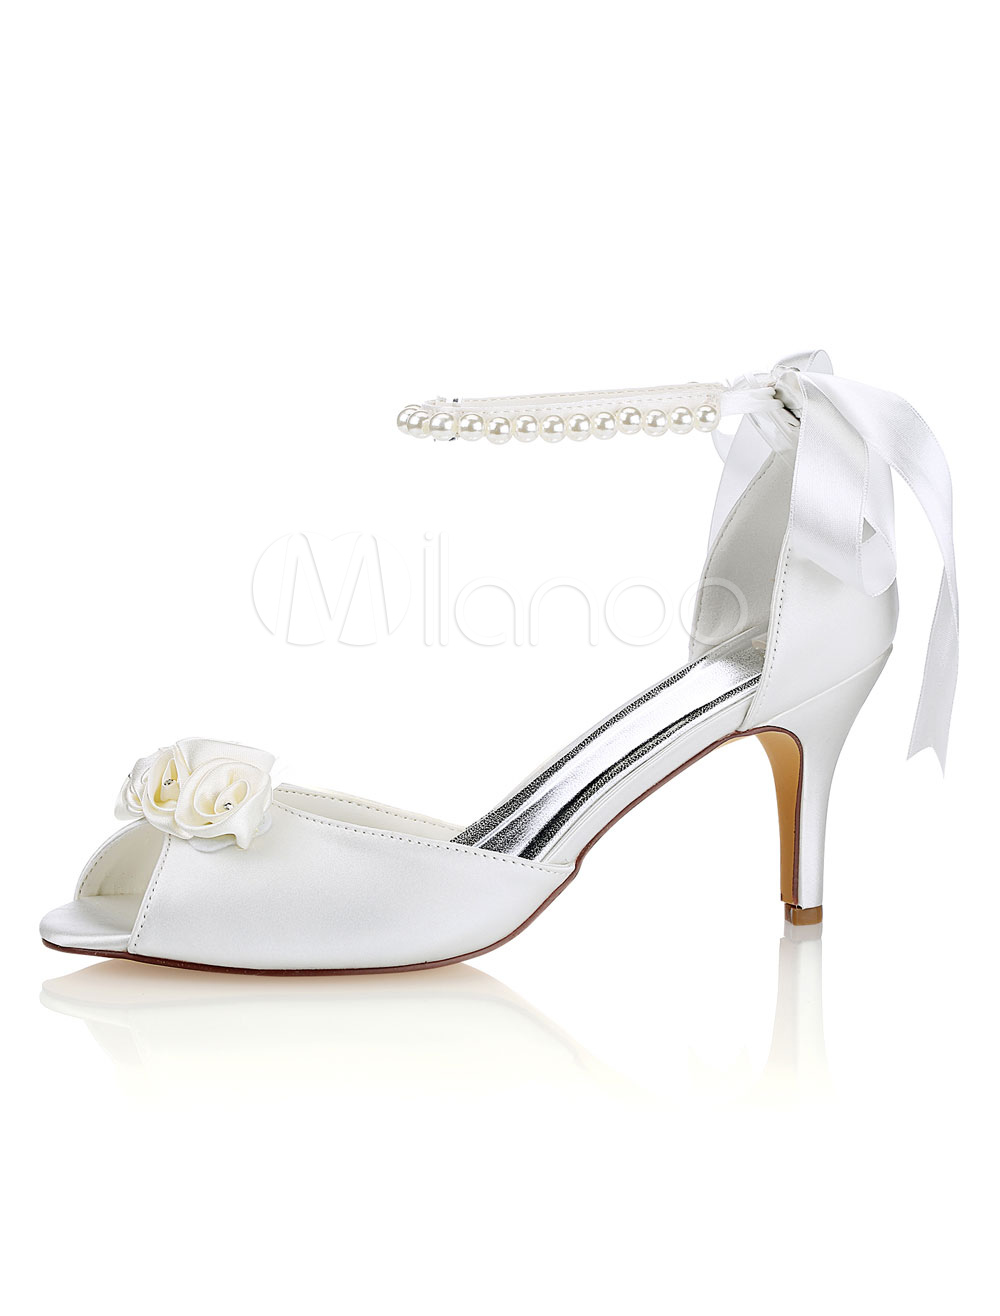 Silk Wedding Shoes Ivory Peep Toe Bow Pearls Ankle Strap Bridal Shoes